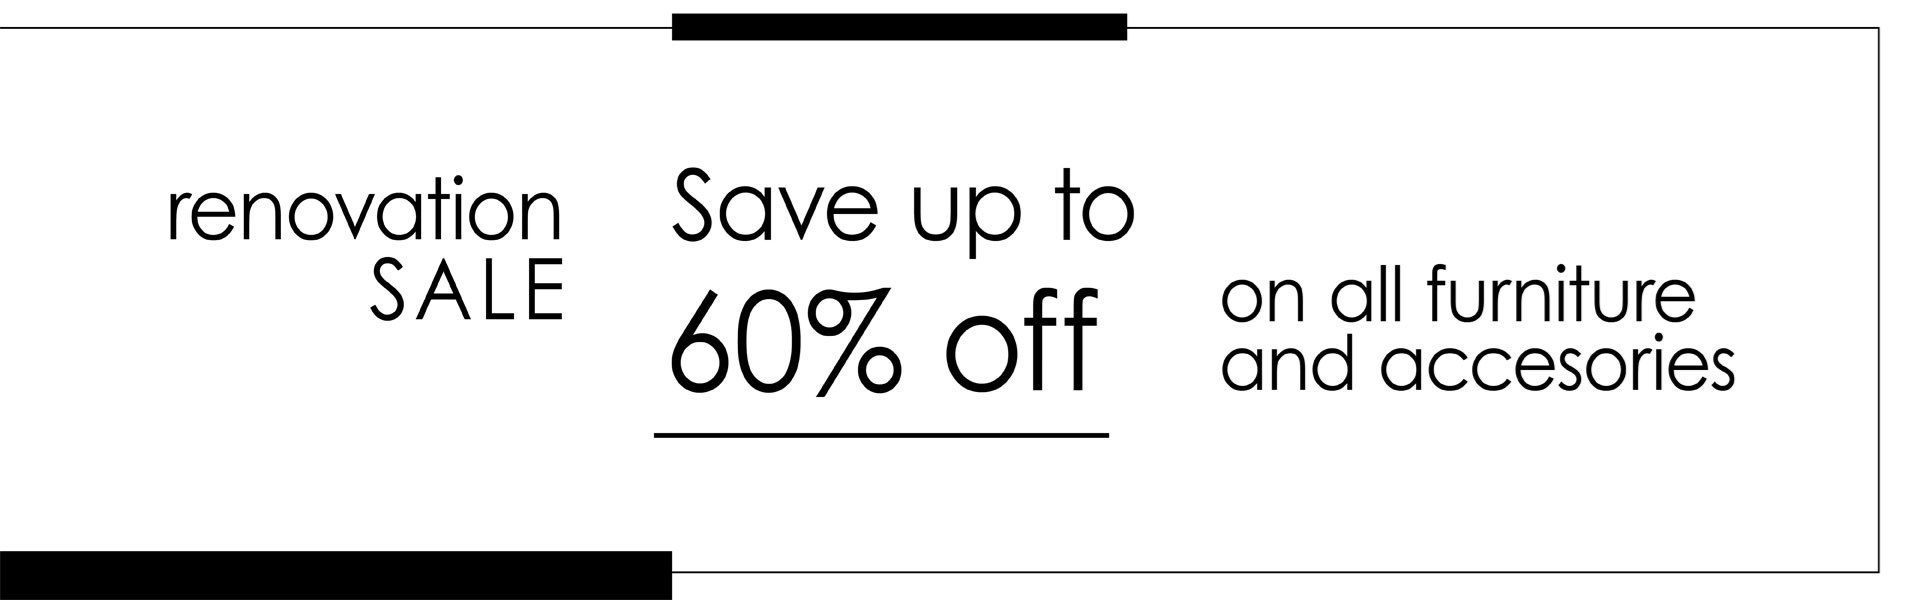 Save Up To 60% On All Furniture And Accessories; See Store For Details.